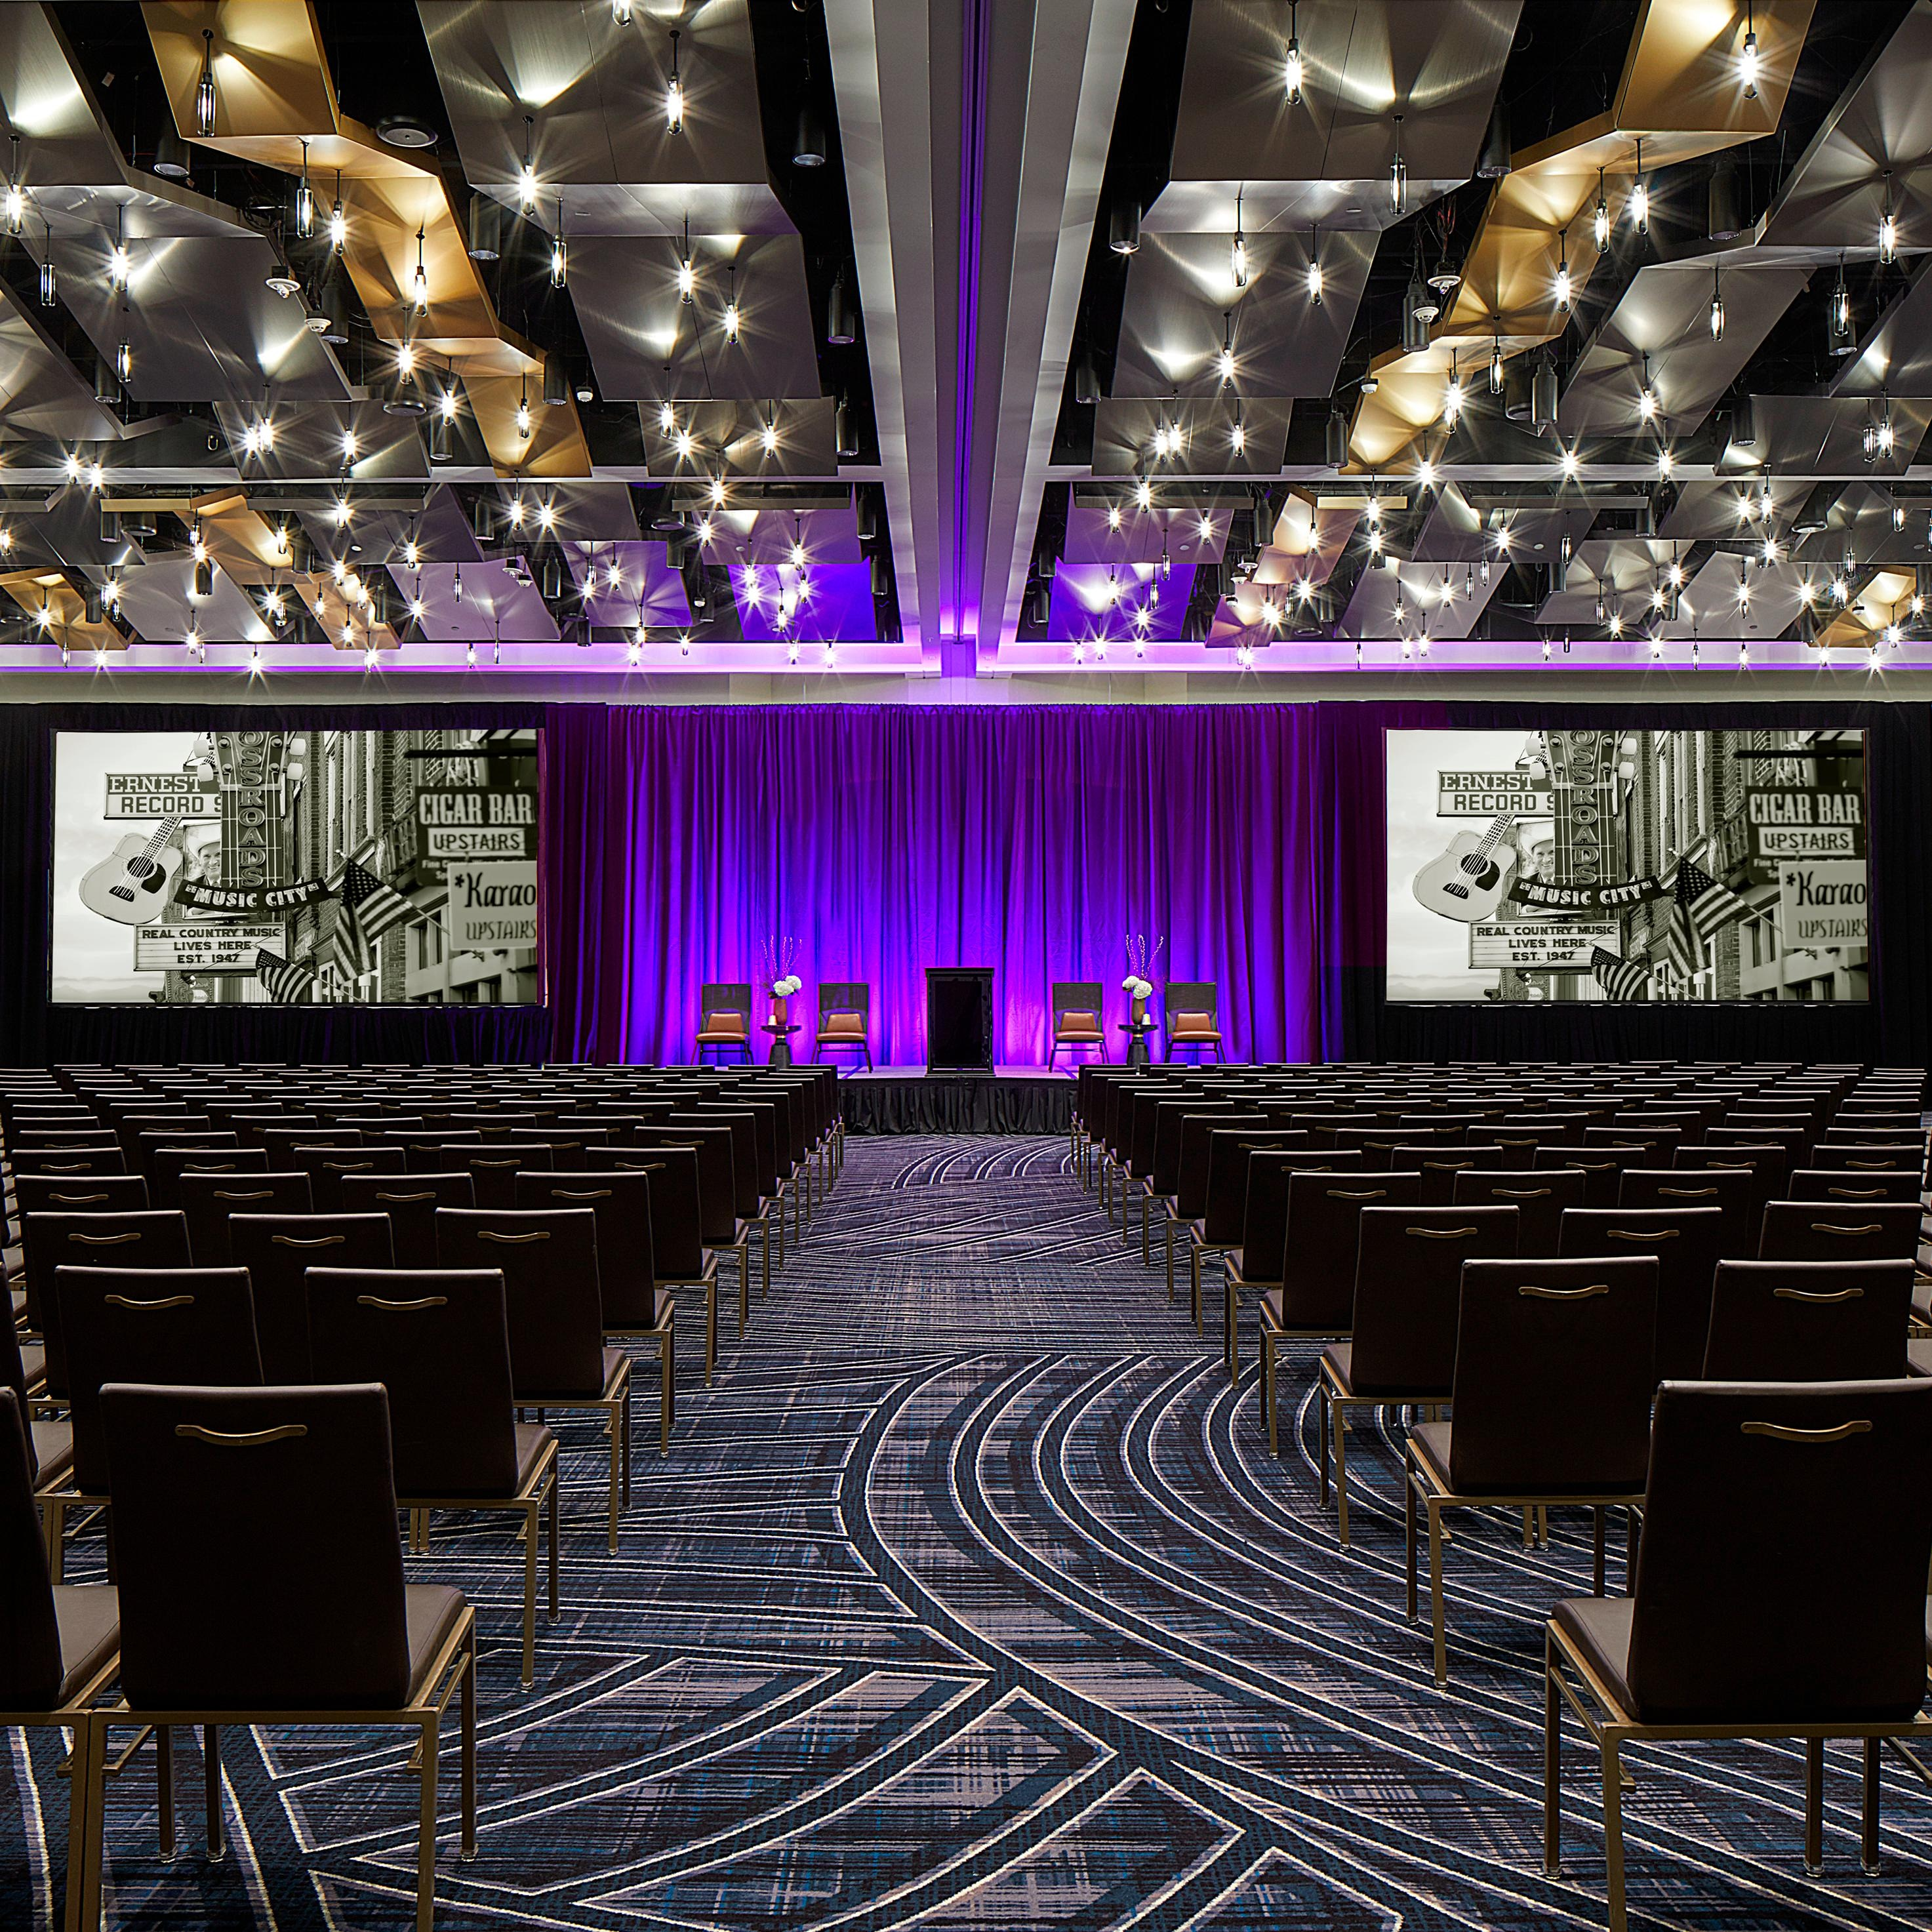 The newly renovated Grand Ballroom will spark inspiration with our state-of-the-art technology and event staff to assure every detail is perfect.